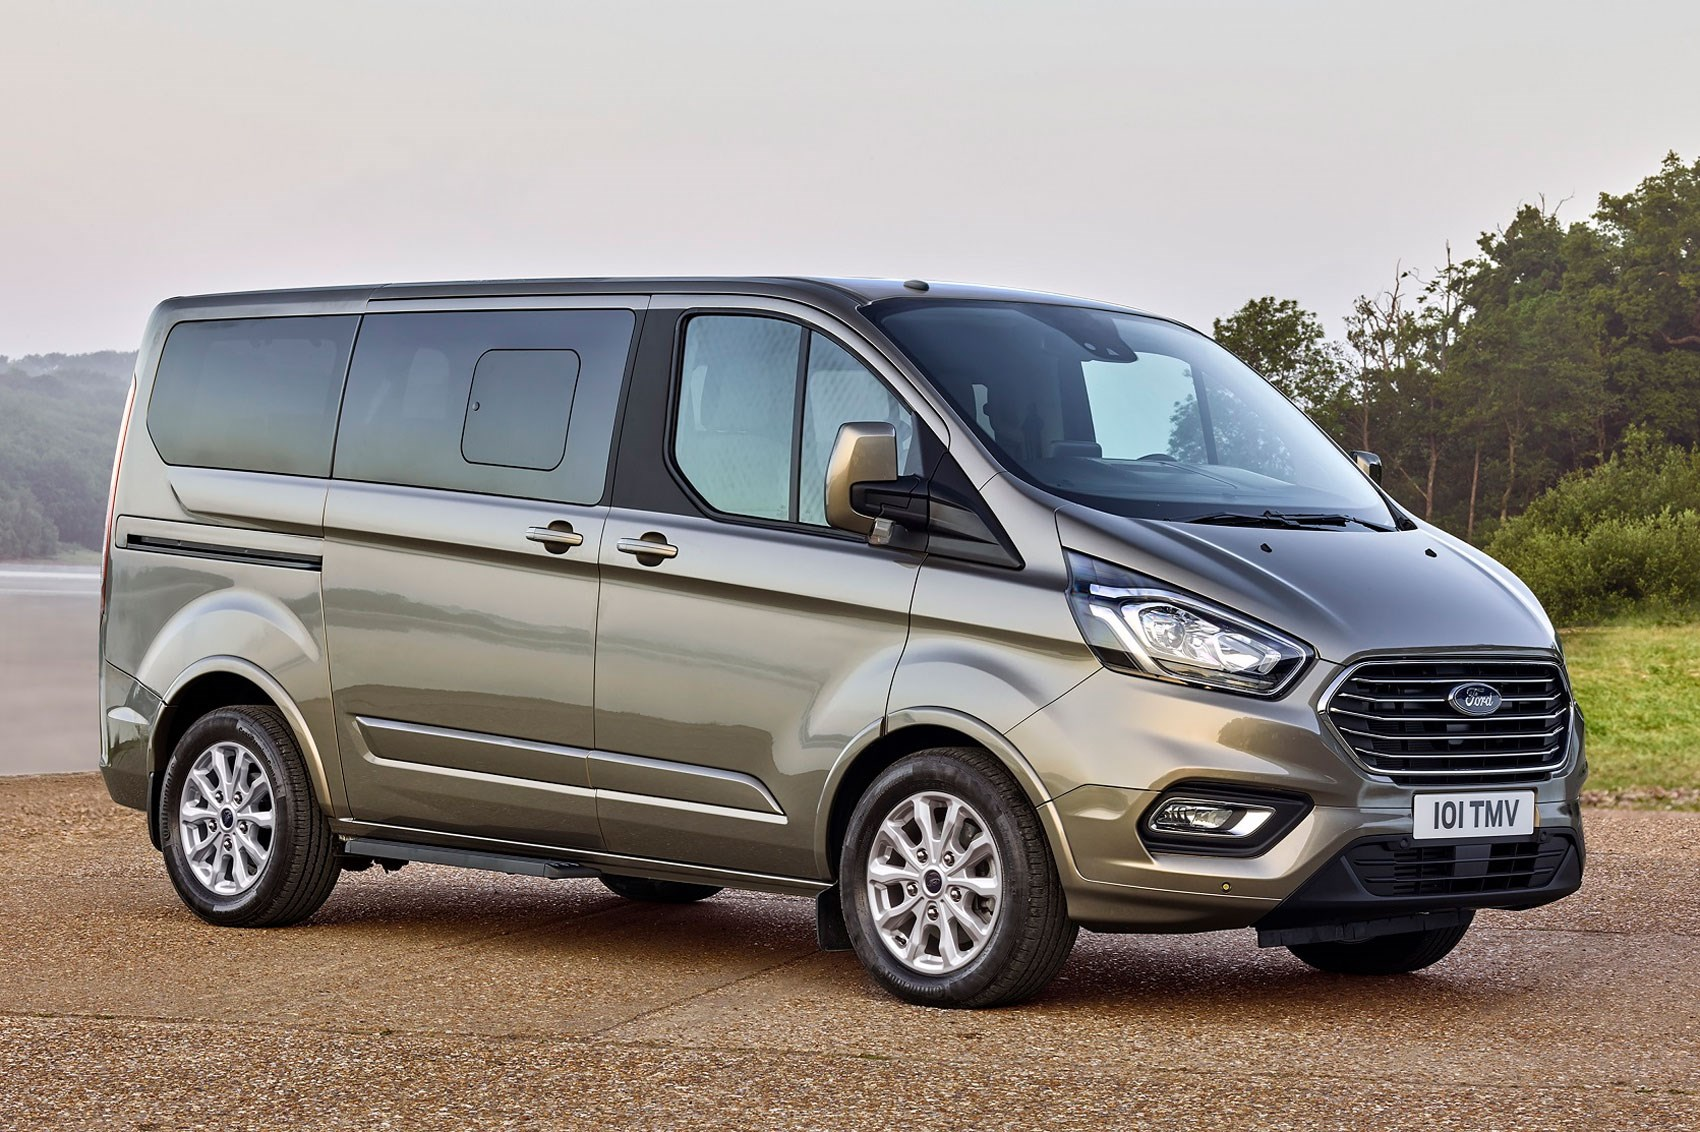 2018 ford transit custom review on parkers vans advertisement